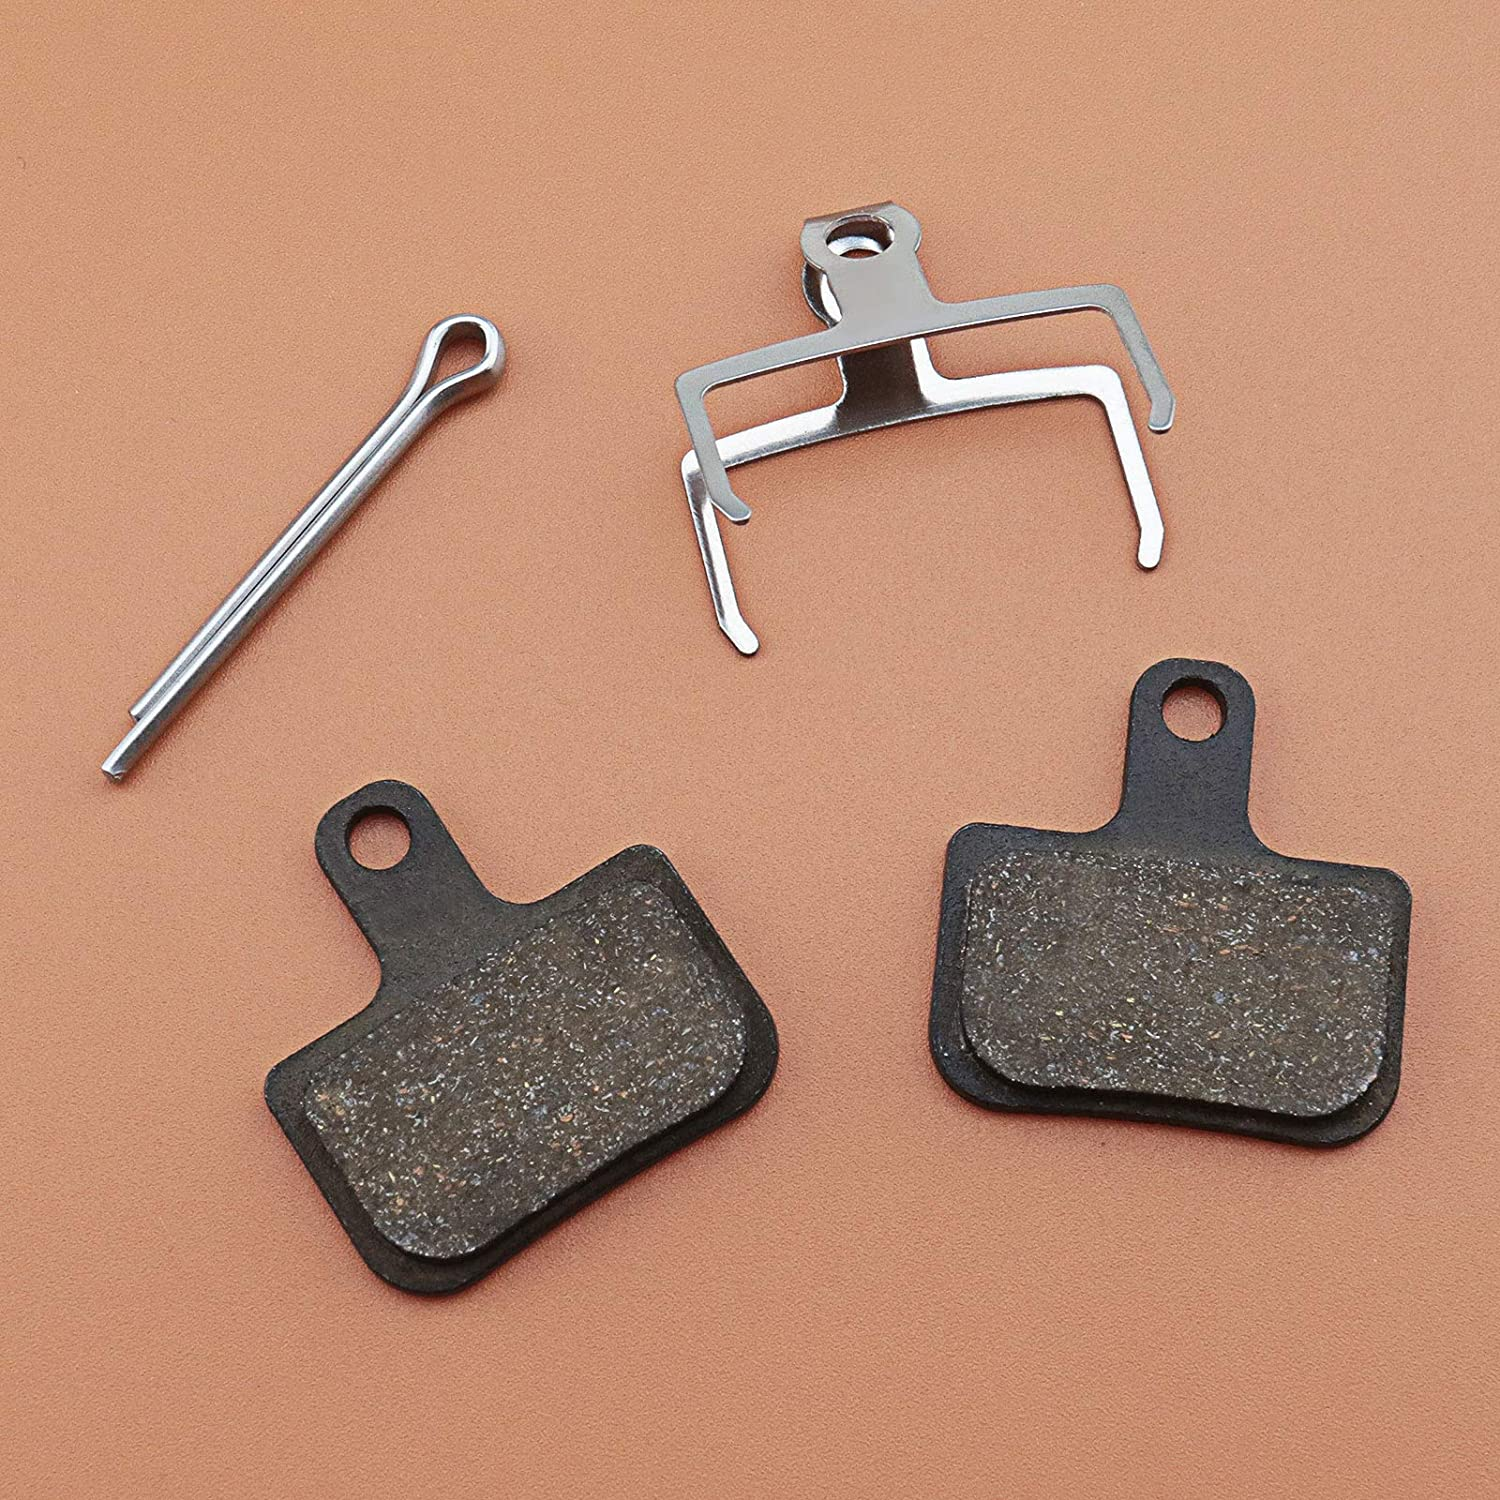 2 Pairs Resin Semi Metallic Bicycle Disc Brake Pads 4mm Thickness With Springs /& Securing Clips Compatible With SRAM Level T Level TL